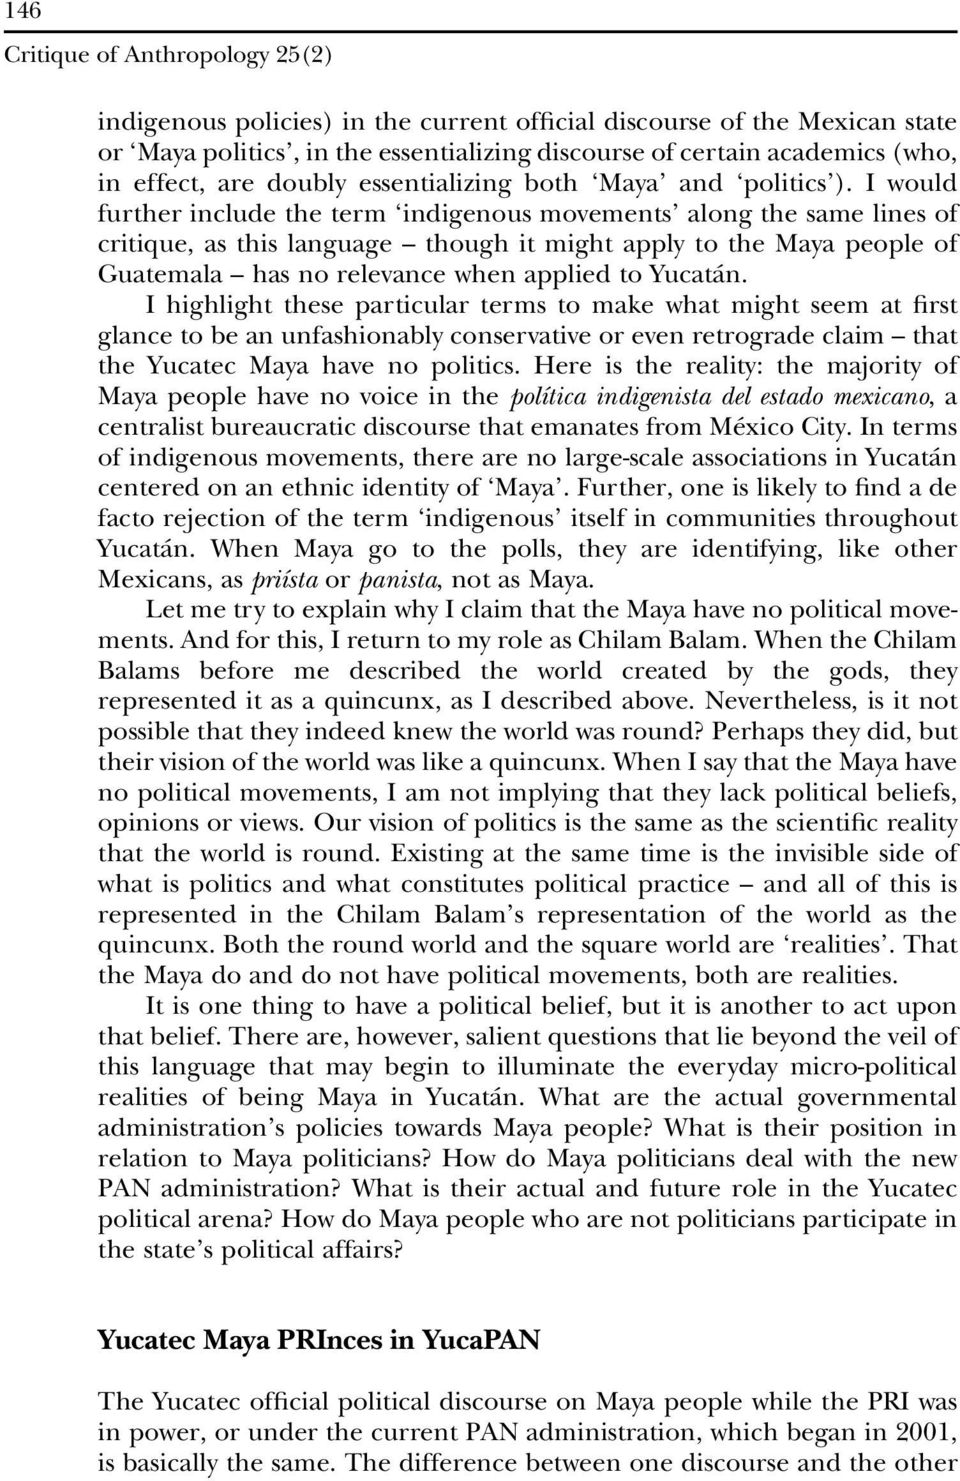 I would further include the term indigenous movements along the same lines of critique, as this language though it might apply to the Maya people of Guatemala has no relevance when applied to Yucatán.